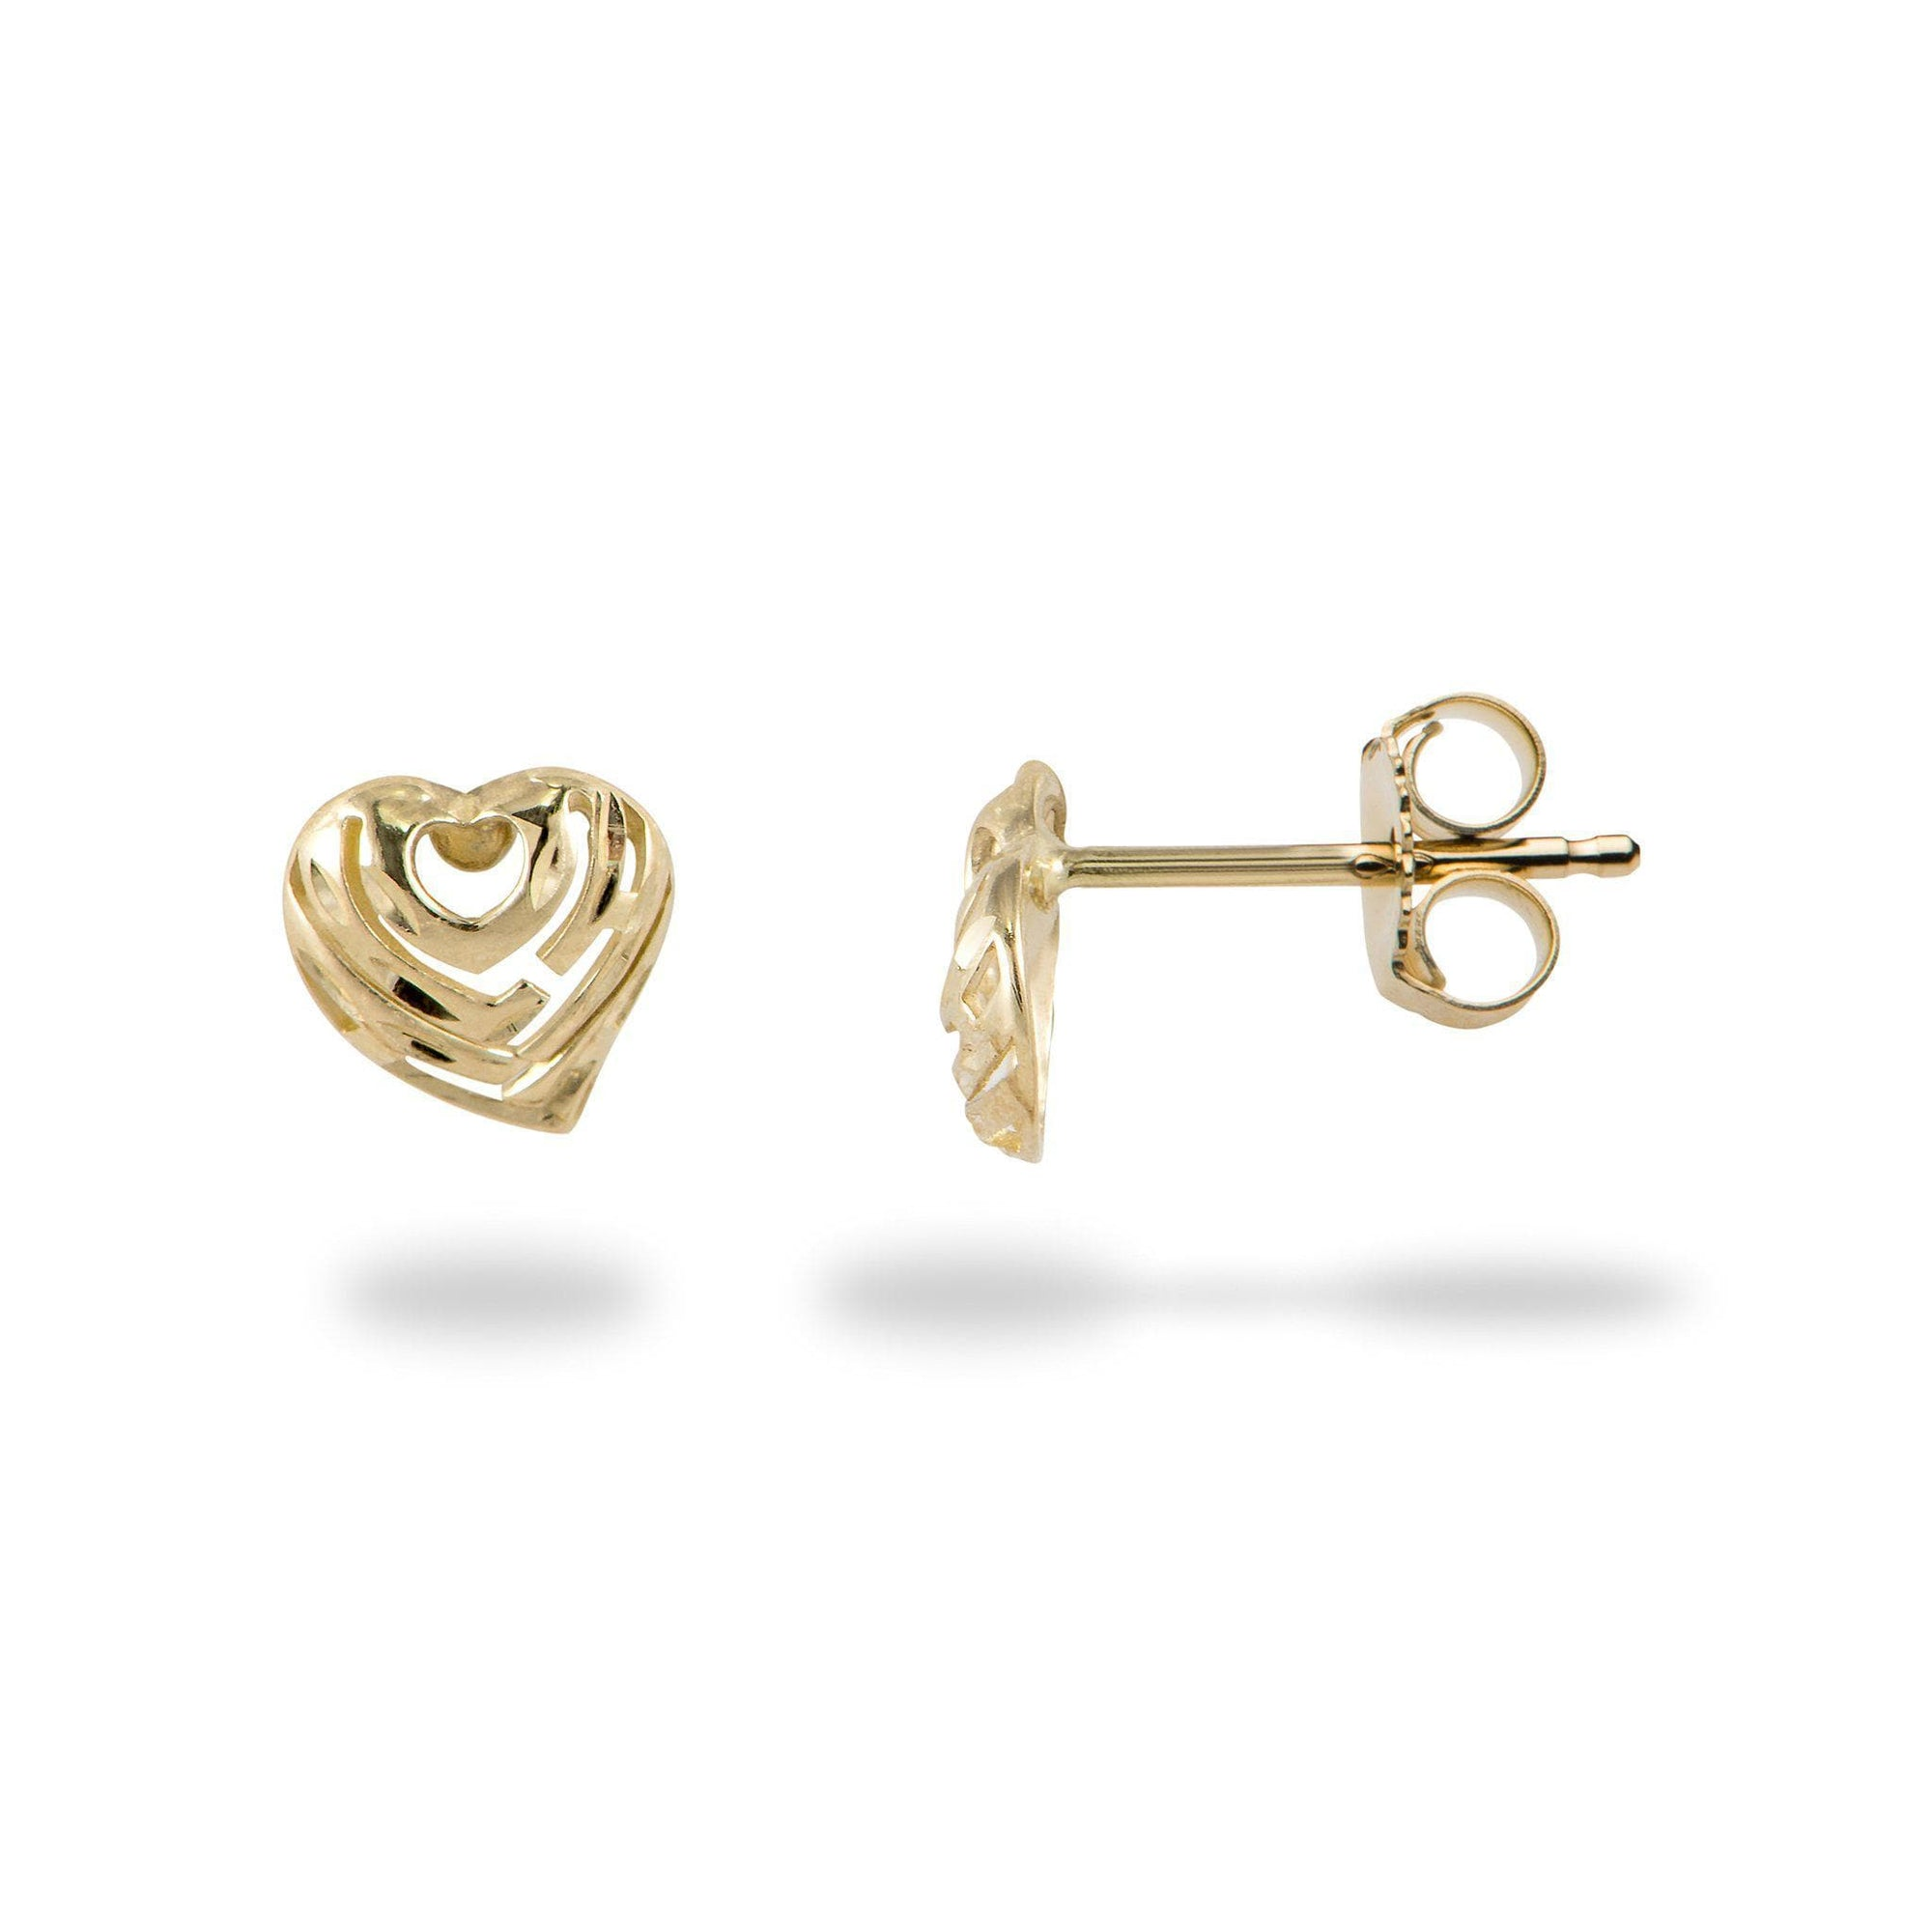 Aloha Heart Earrings in Gold - 7mm-[SKU]